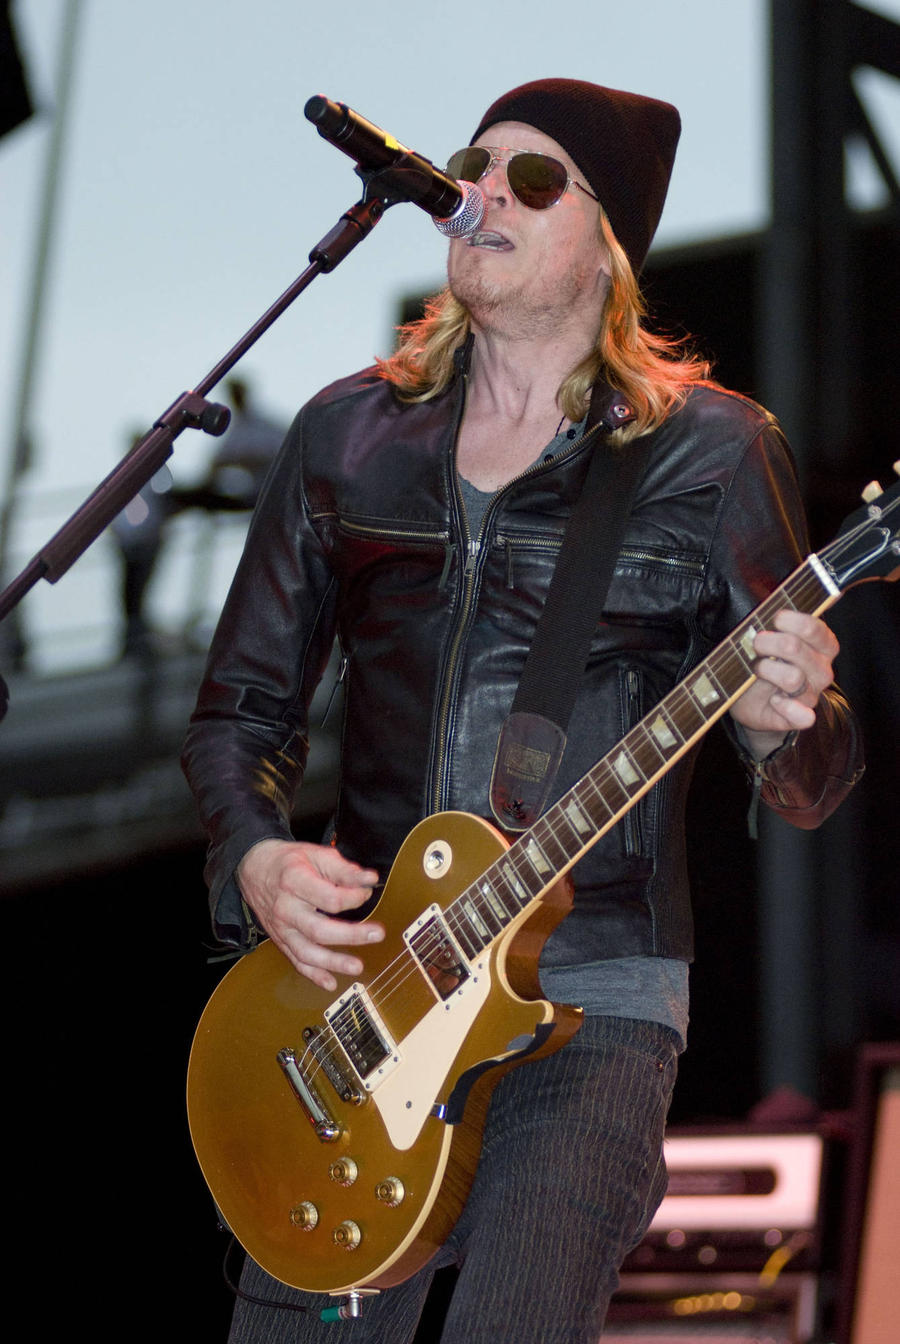 Wes Scantlin Sparks Bomb Scare With Car Stunt